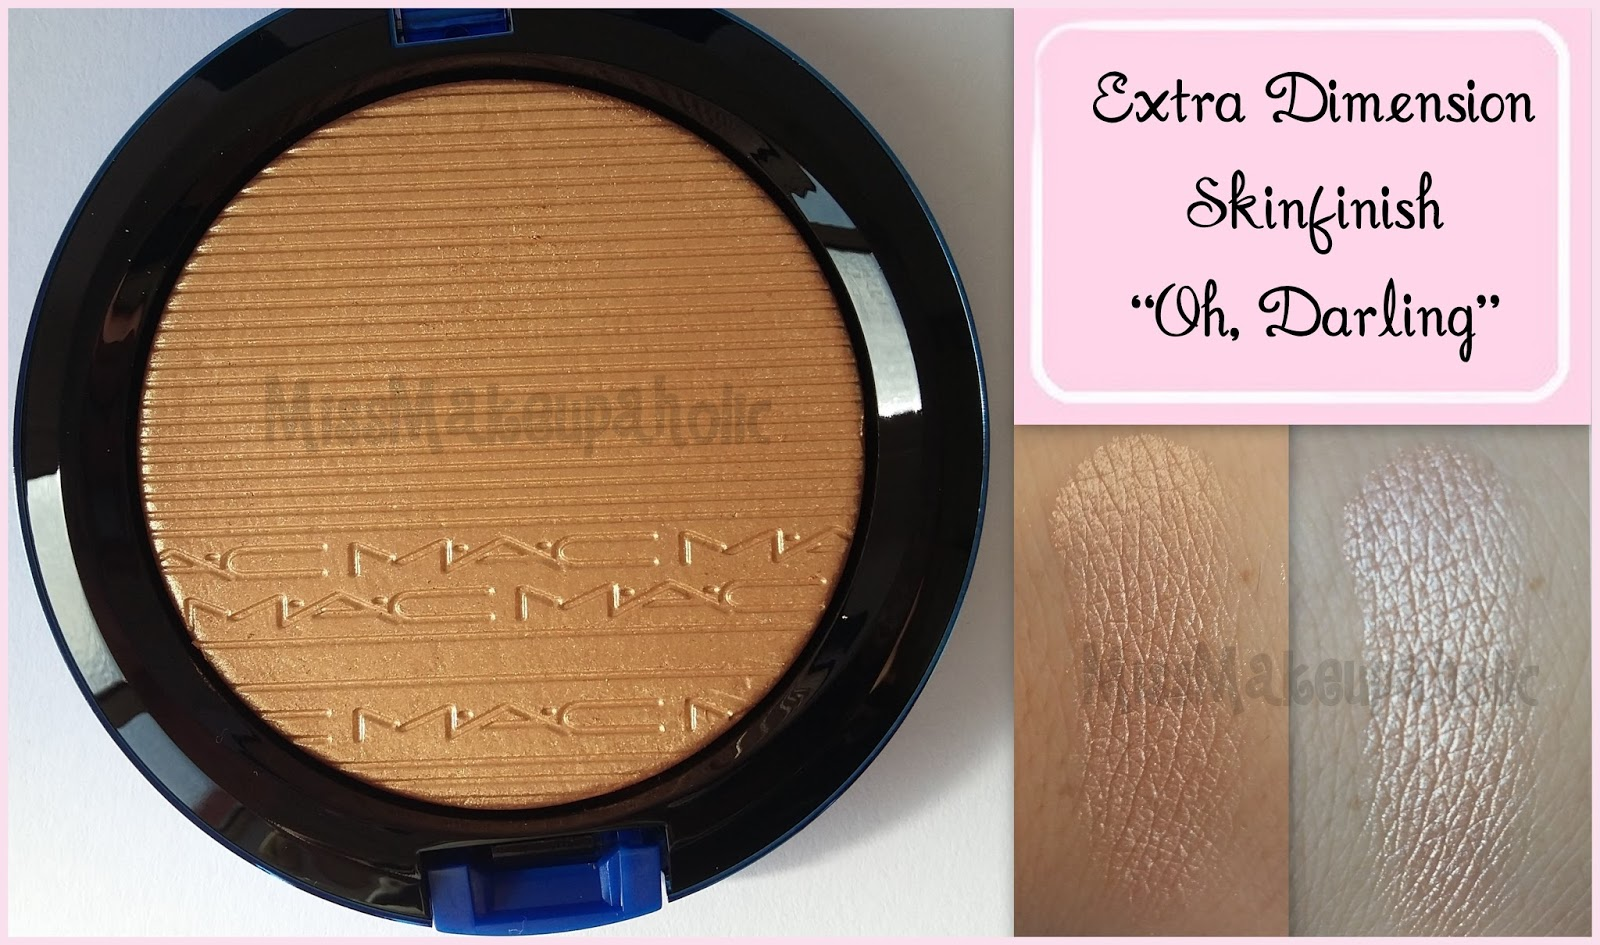 Iluminadores Mac Missmakeupaholic Extra Dimension Skinfish De Mac En Quotoh